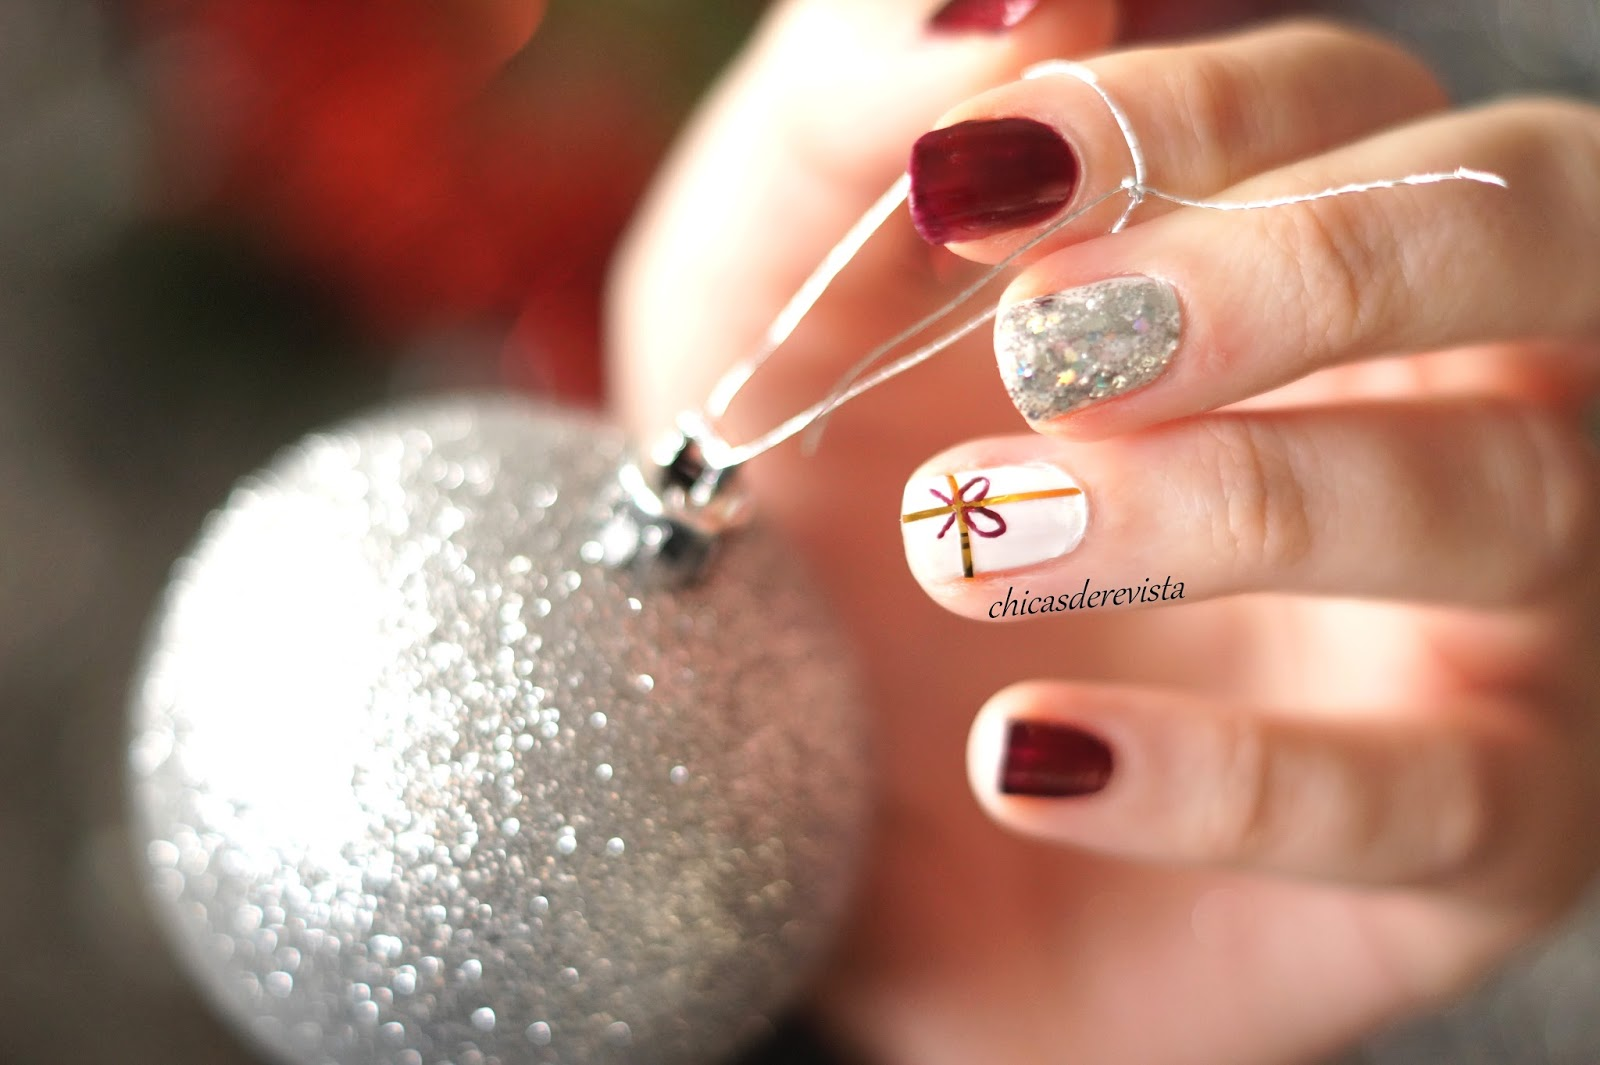 Tuto nail art facile et rapide 4 christmas is coming chicas de revista blog mode bordeaux - Nail art facile et rapide ...